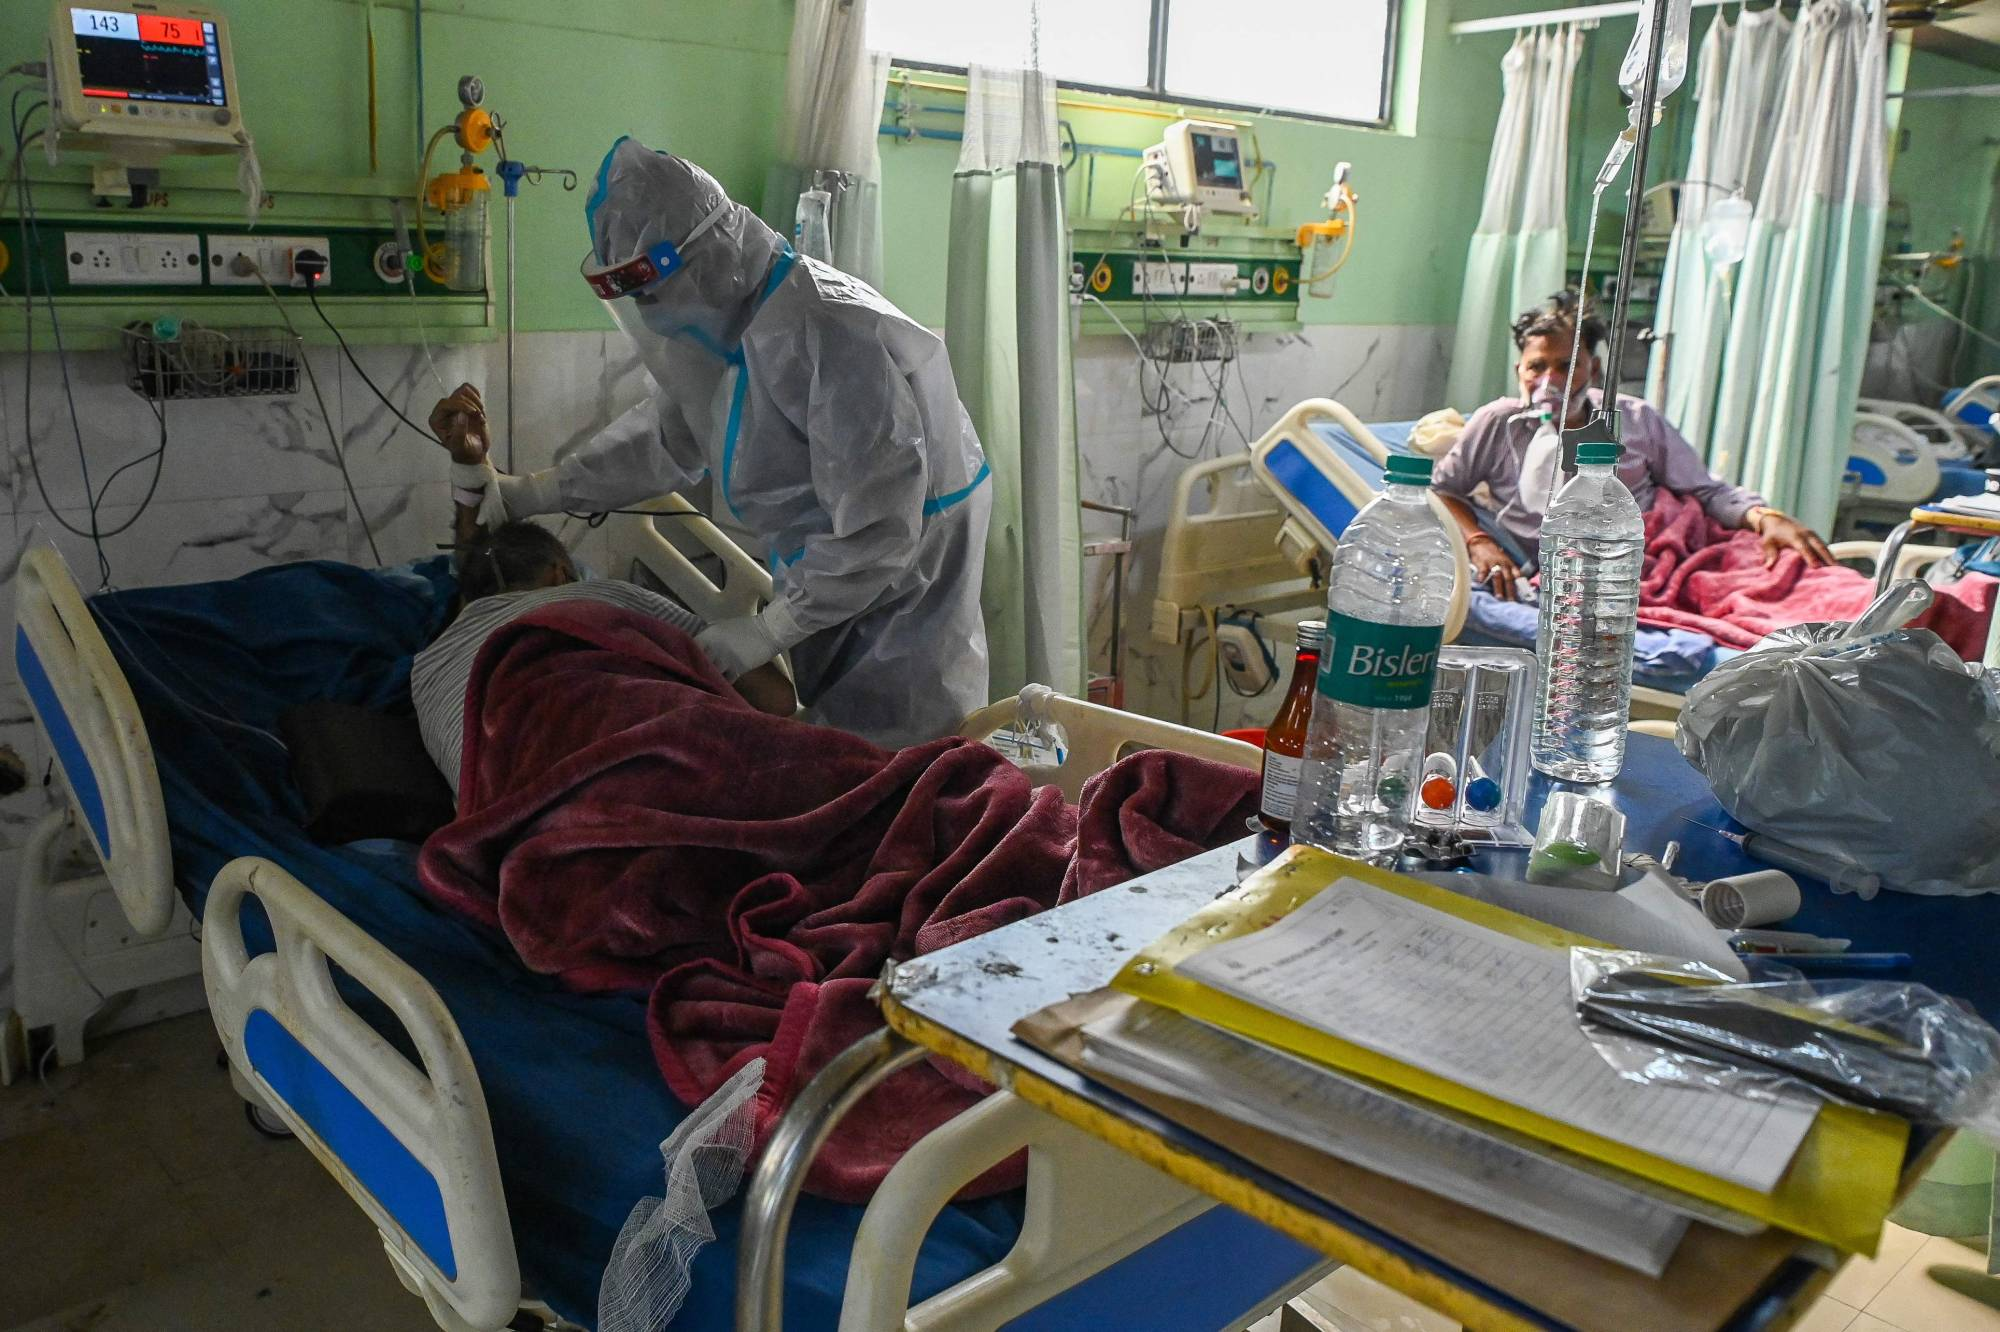 A health worker wearing a personal protective equipment suit tends to a COVID-19 patient inside the Intensive Care Unit of the Teerthanker Mahaveer University hospital in Moradabad, India, on Wednesday.   AFP-JIJI